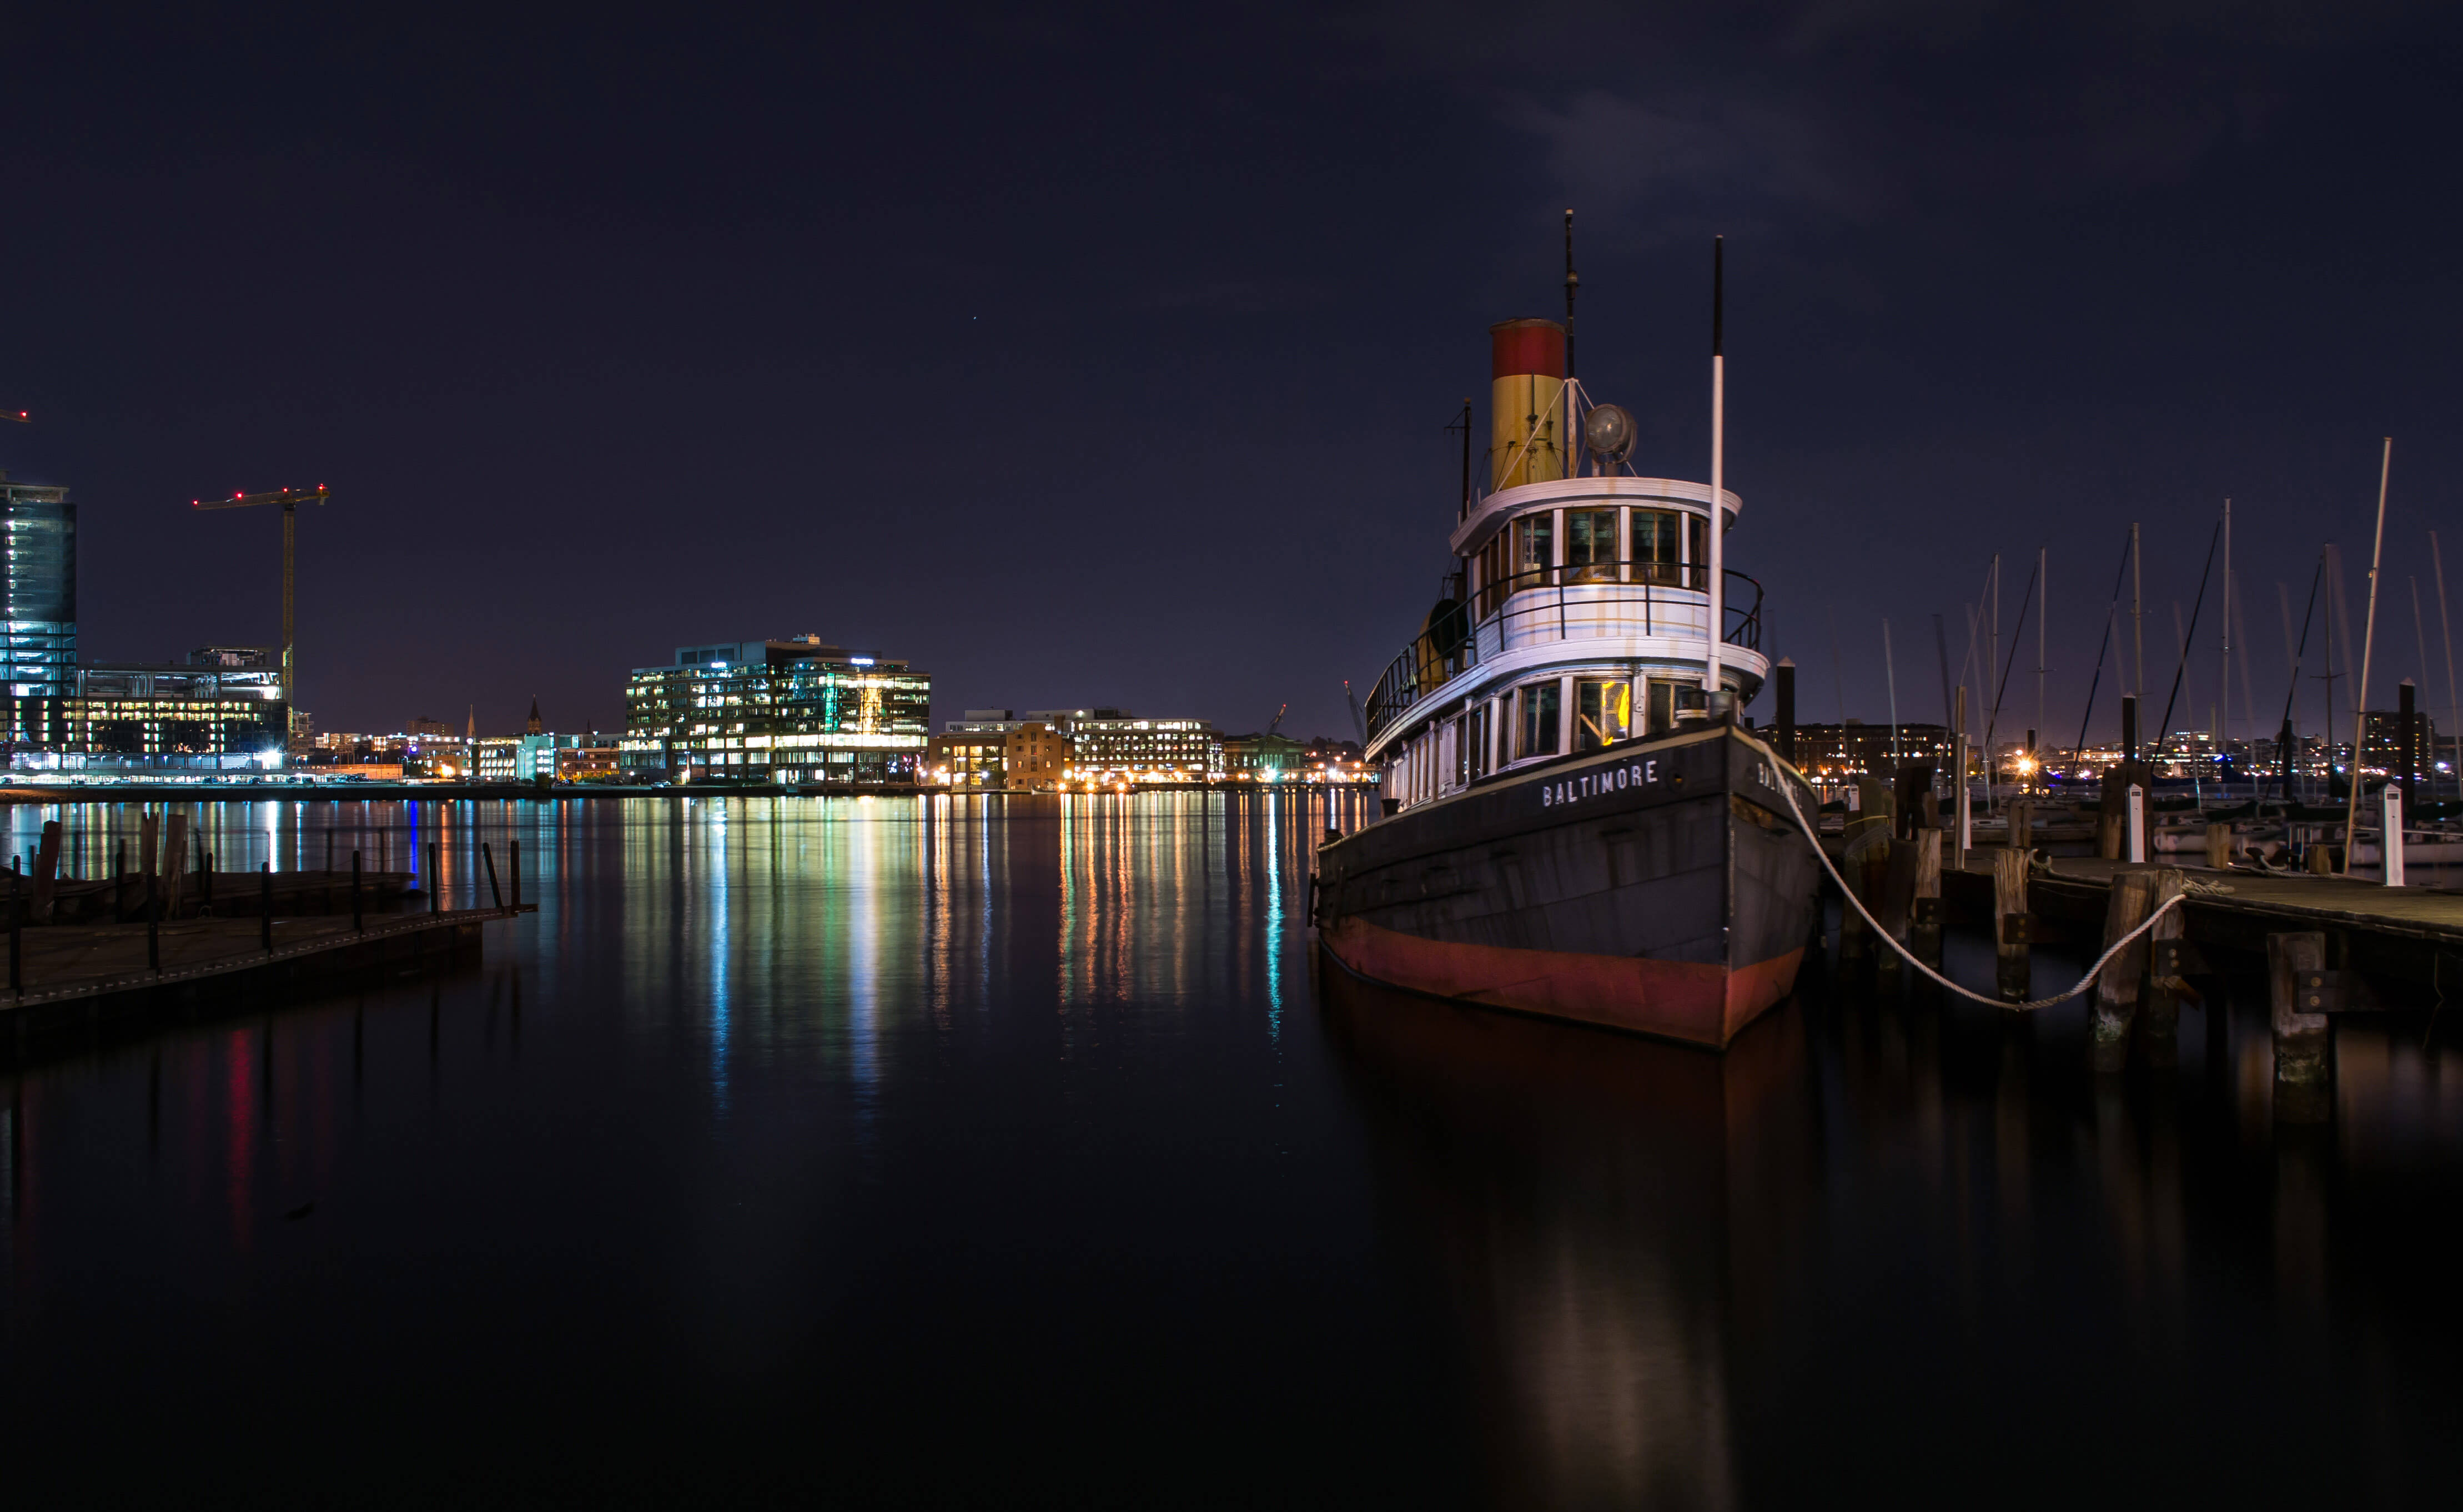 Vancouver, Canada to Baltimore, USA for only $348 CAD roundtrip (Feb-Mar dates)